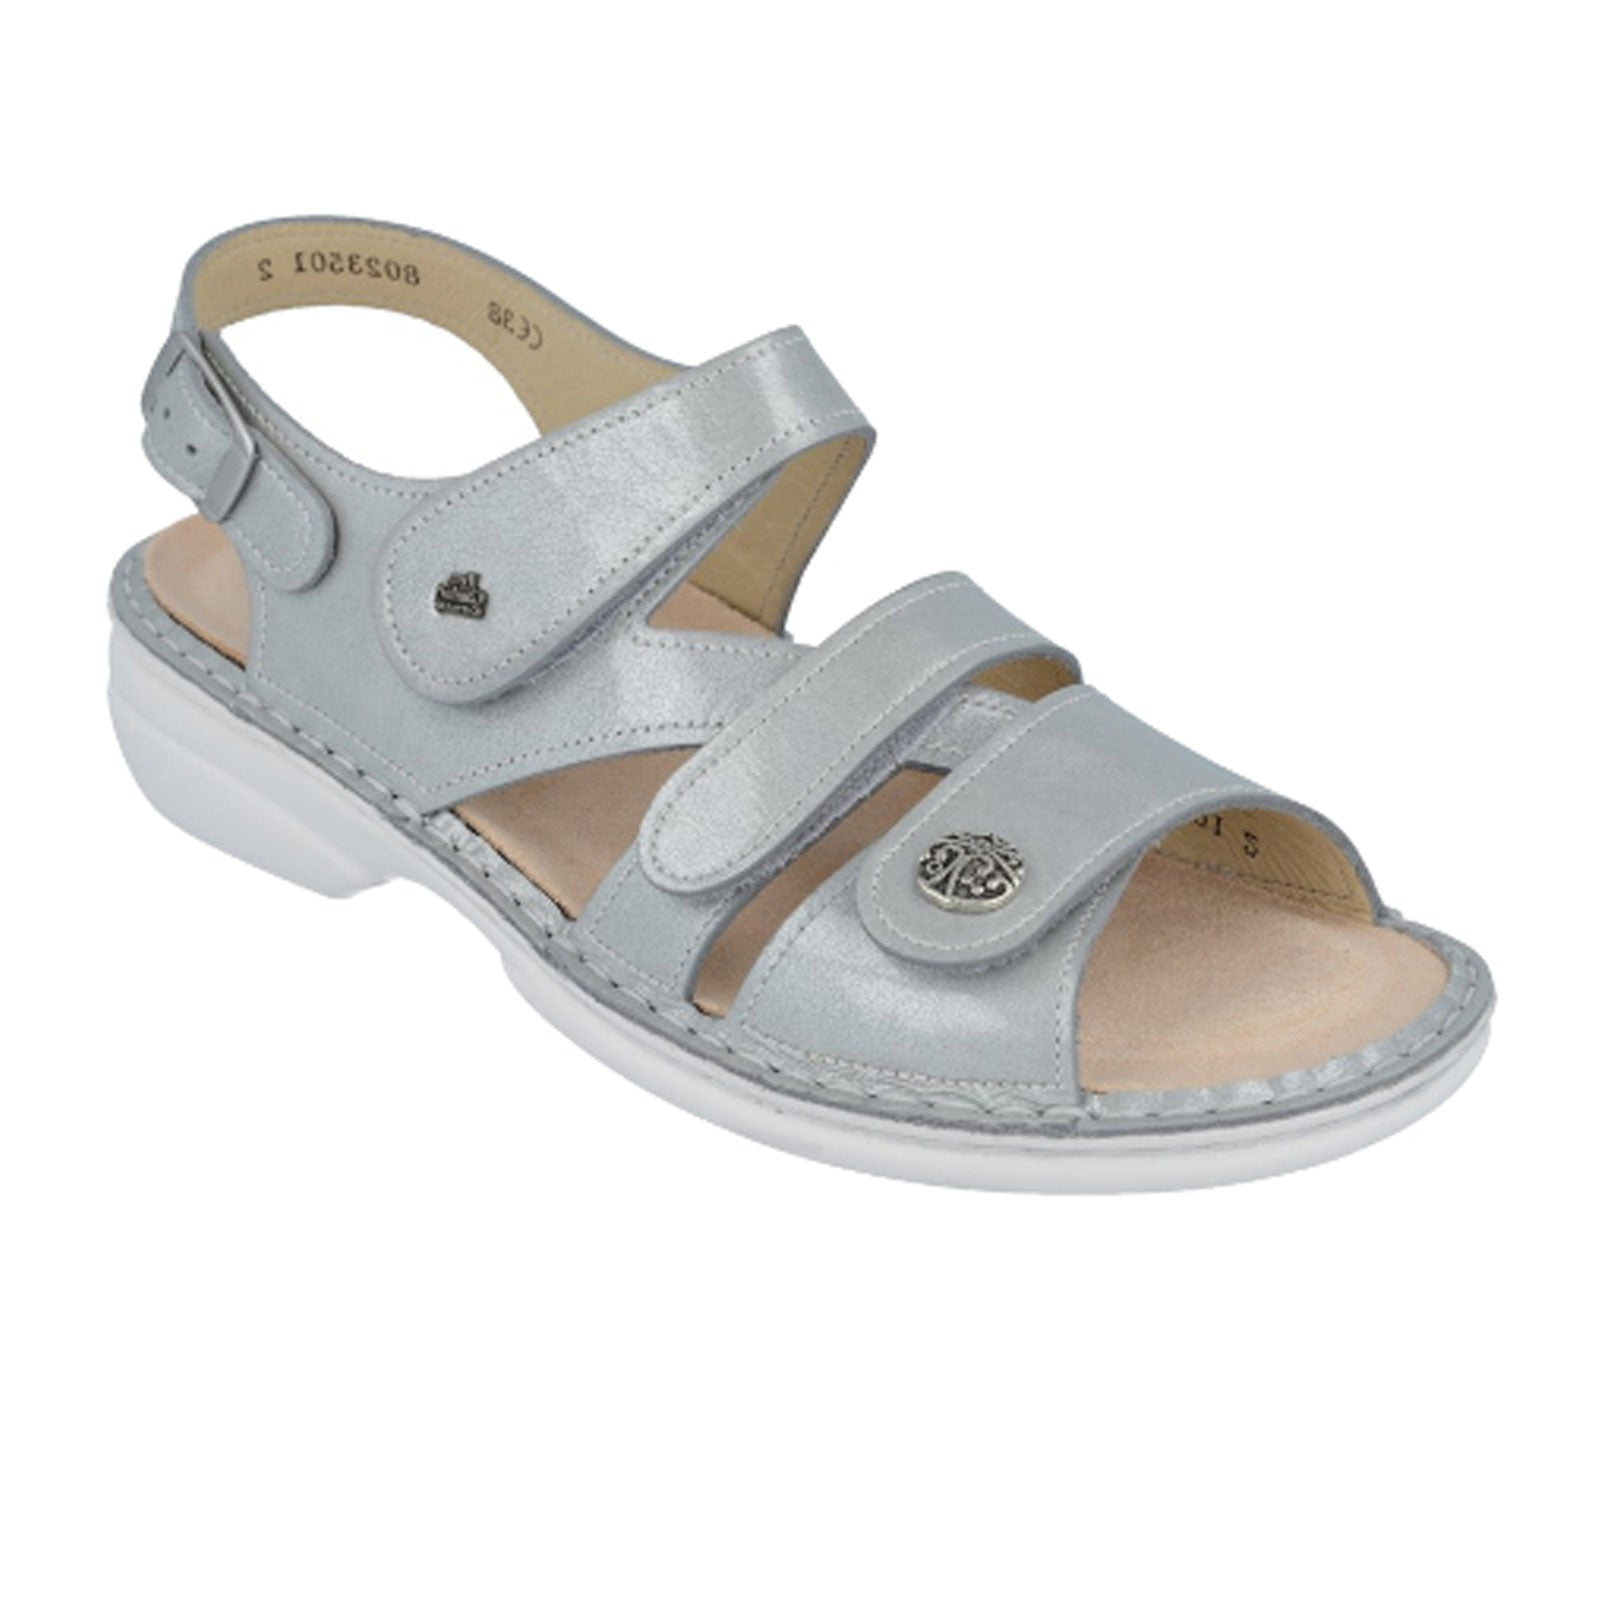 Finn Comfort Gomera-S (Women) - Grey Sandals|Backstrap Sandals - The Heel Shoe Fitters